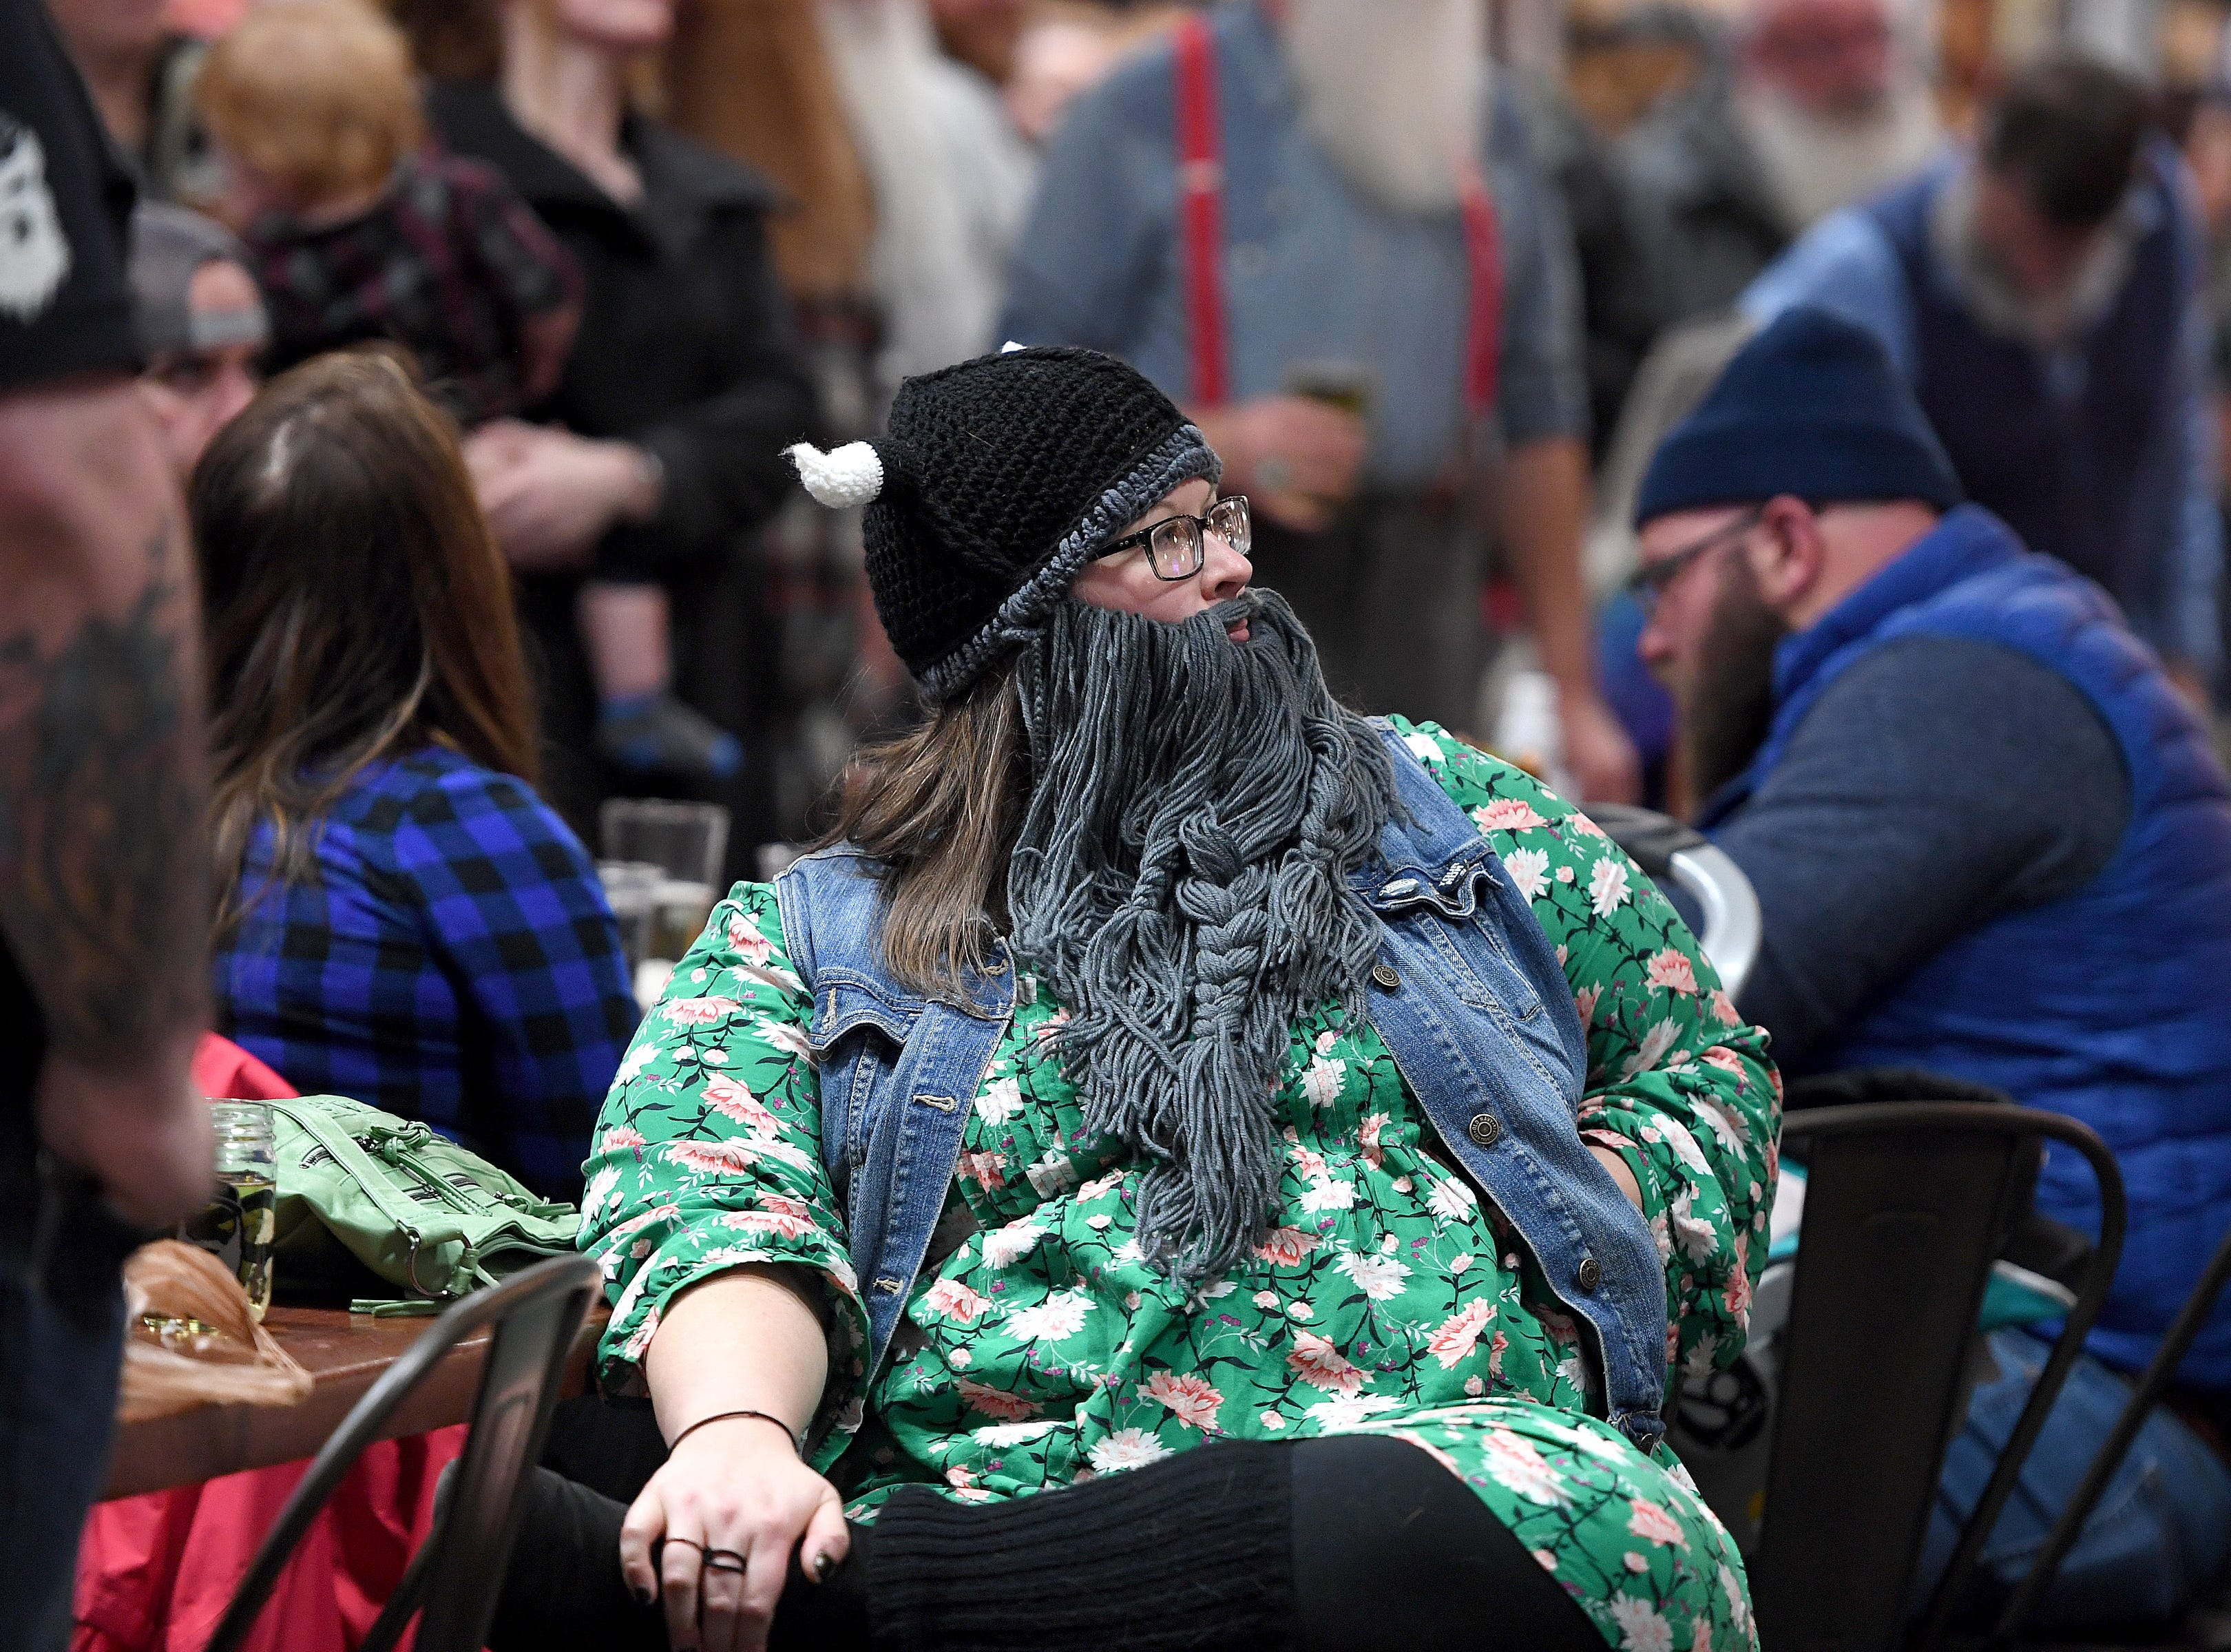 Alana Tucker watches the beard competition as she waits for her category, whiskerina, during Winter Beardfest at Bold Rock Hard Cider in Mills River on Jan. 12, 2019. Proceeds from the competition benefitted the Black Mountain Home Foster Care. Organizers are hoping to make the event annual.